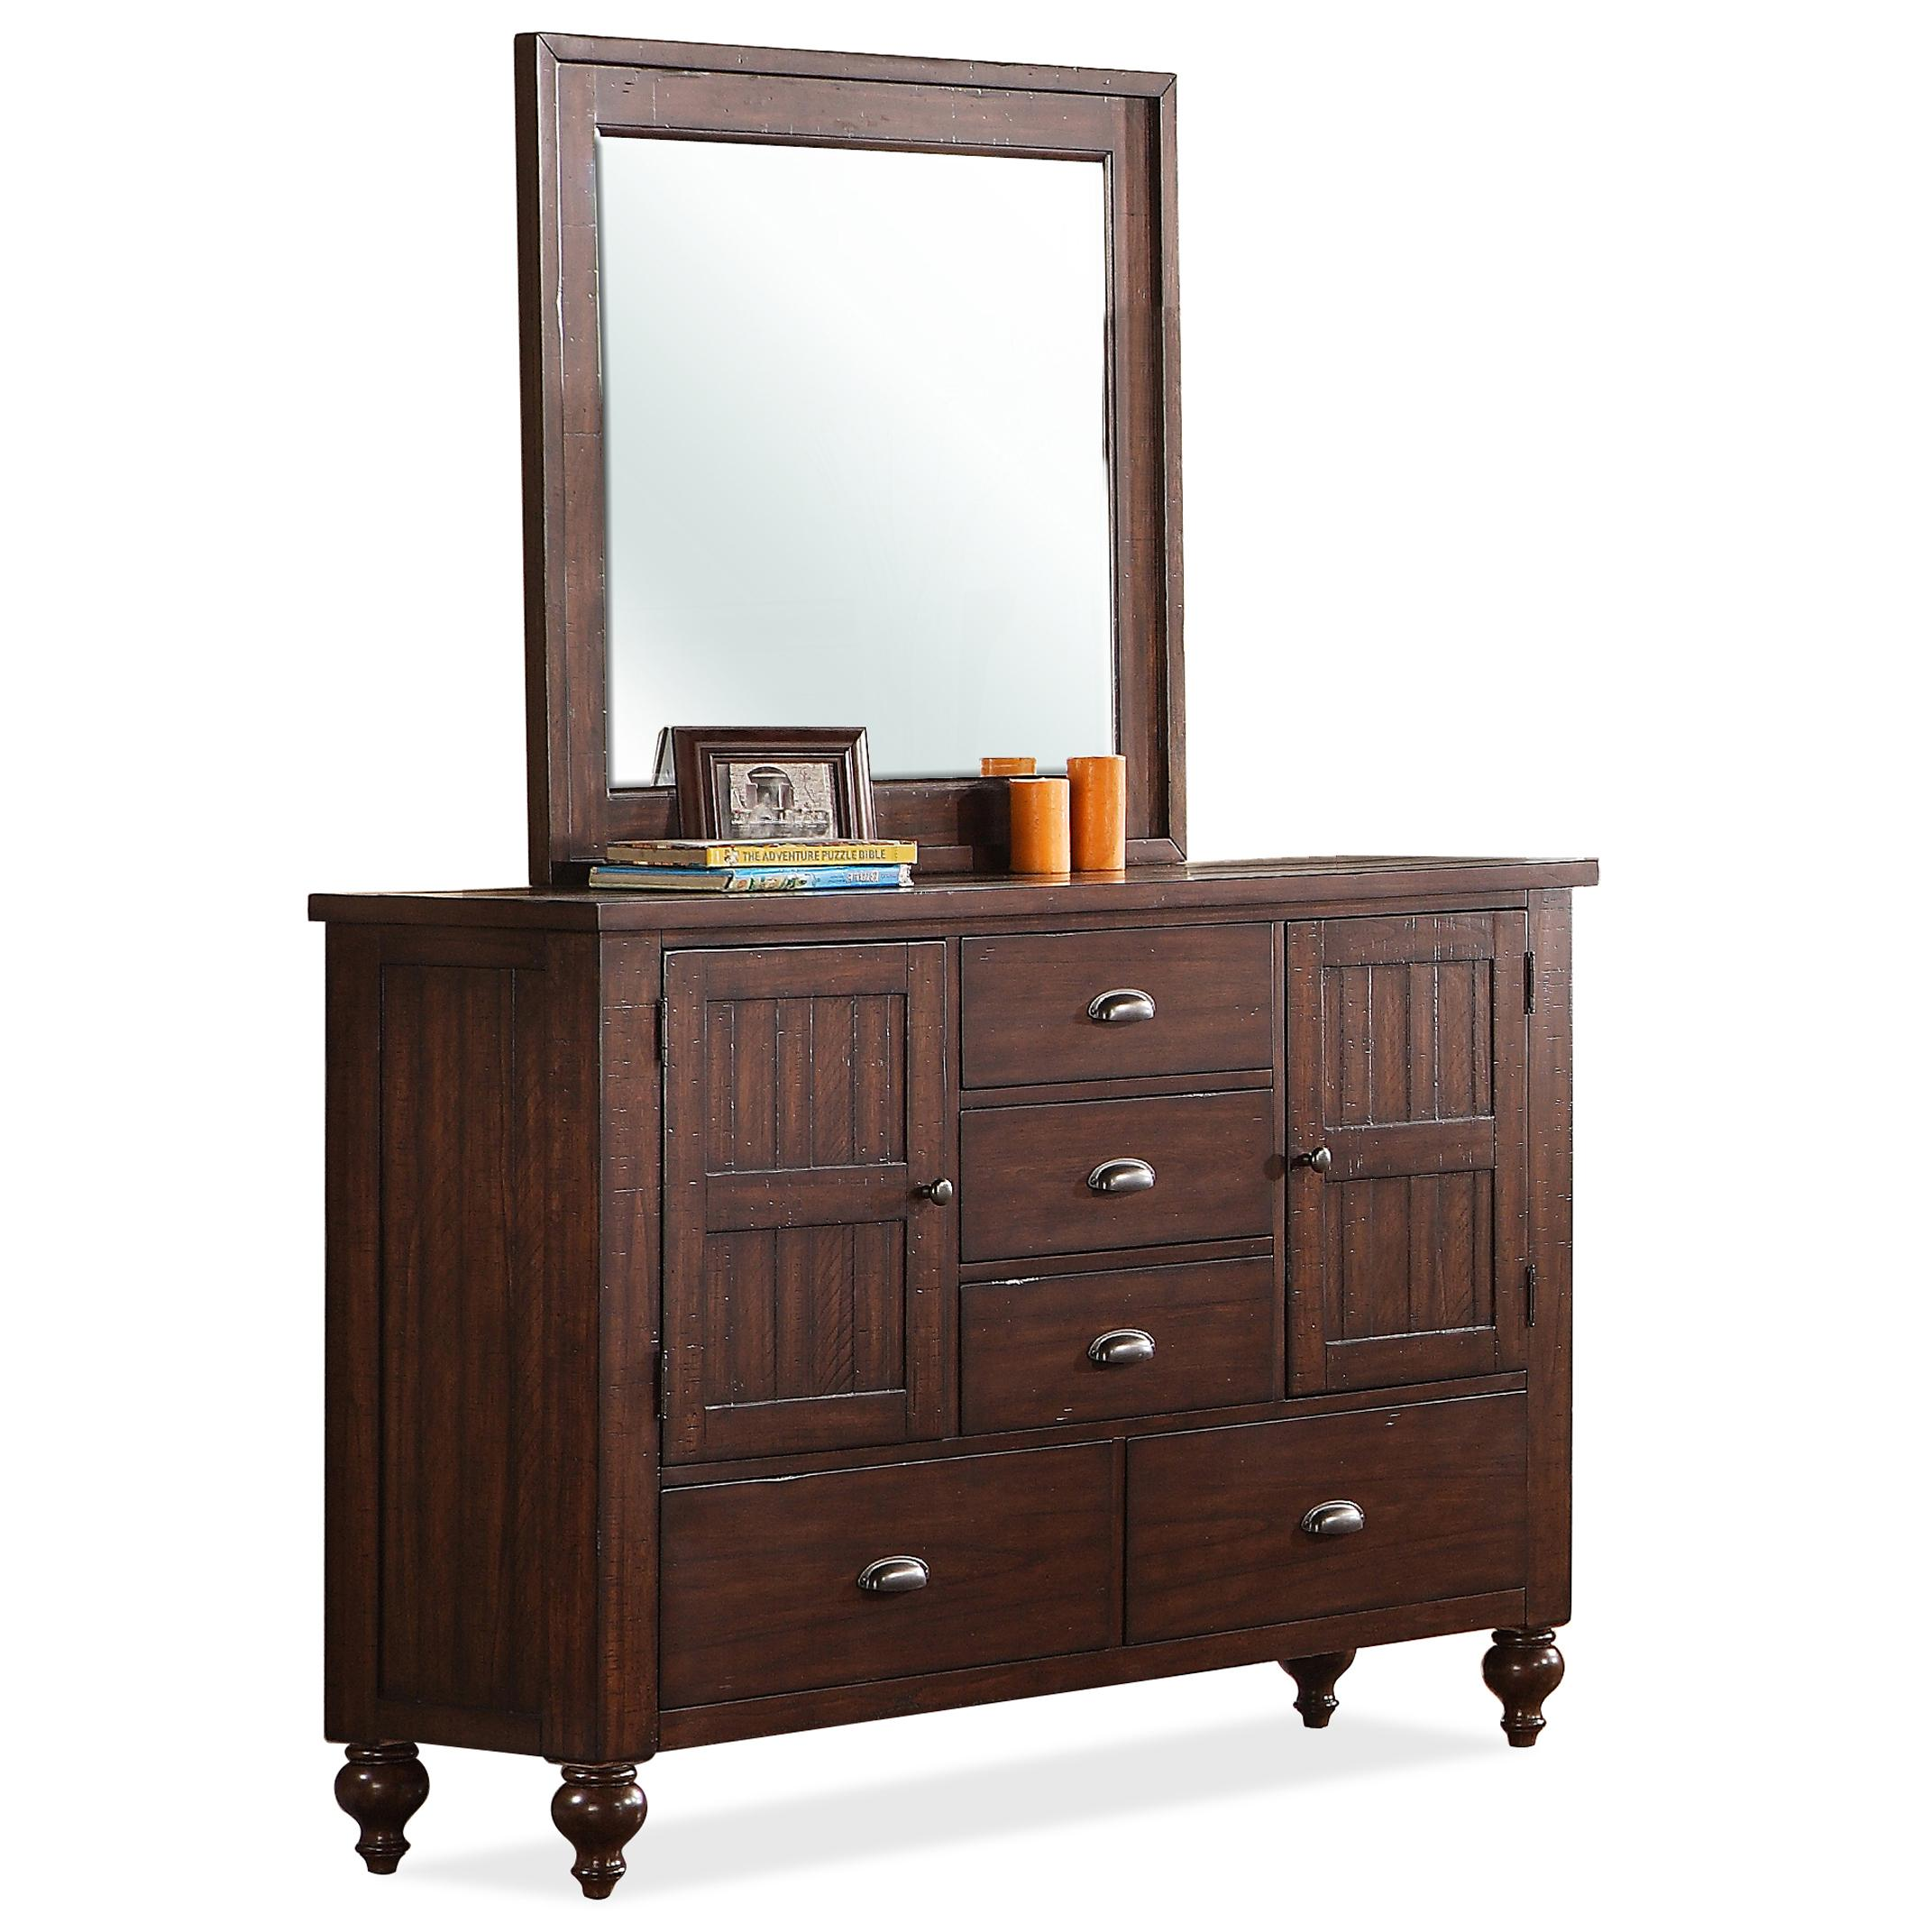 Riverside Furniture Castlewood Dresser and Mirror Combo - Item Number: 335-62+63